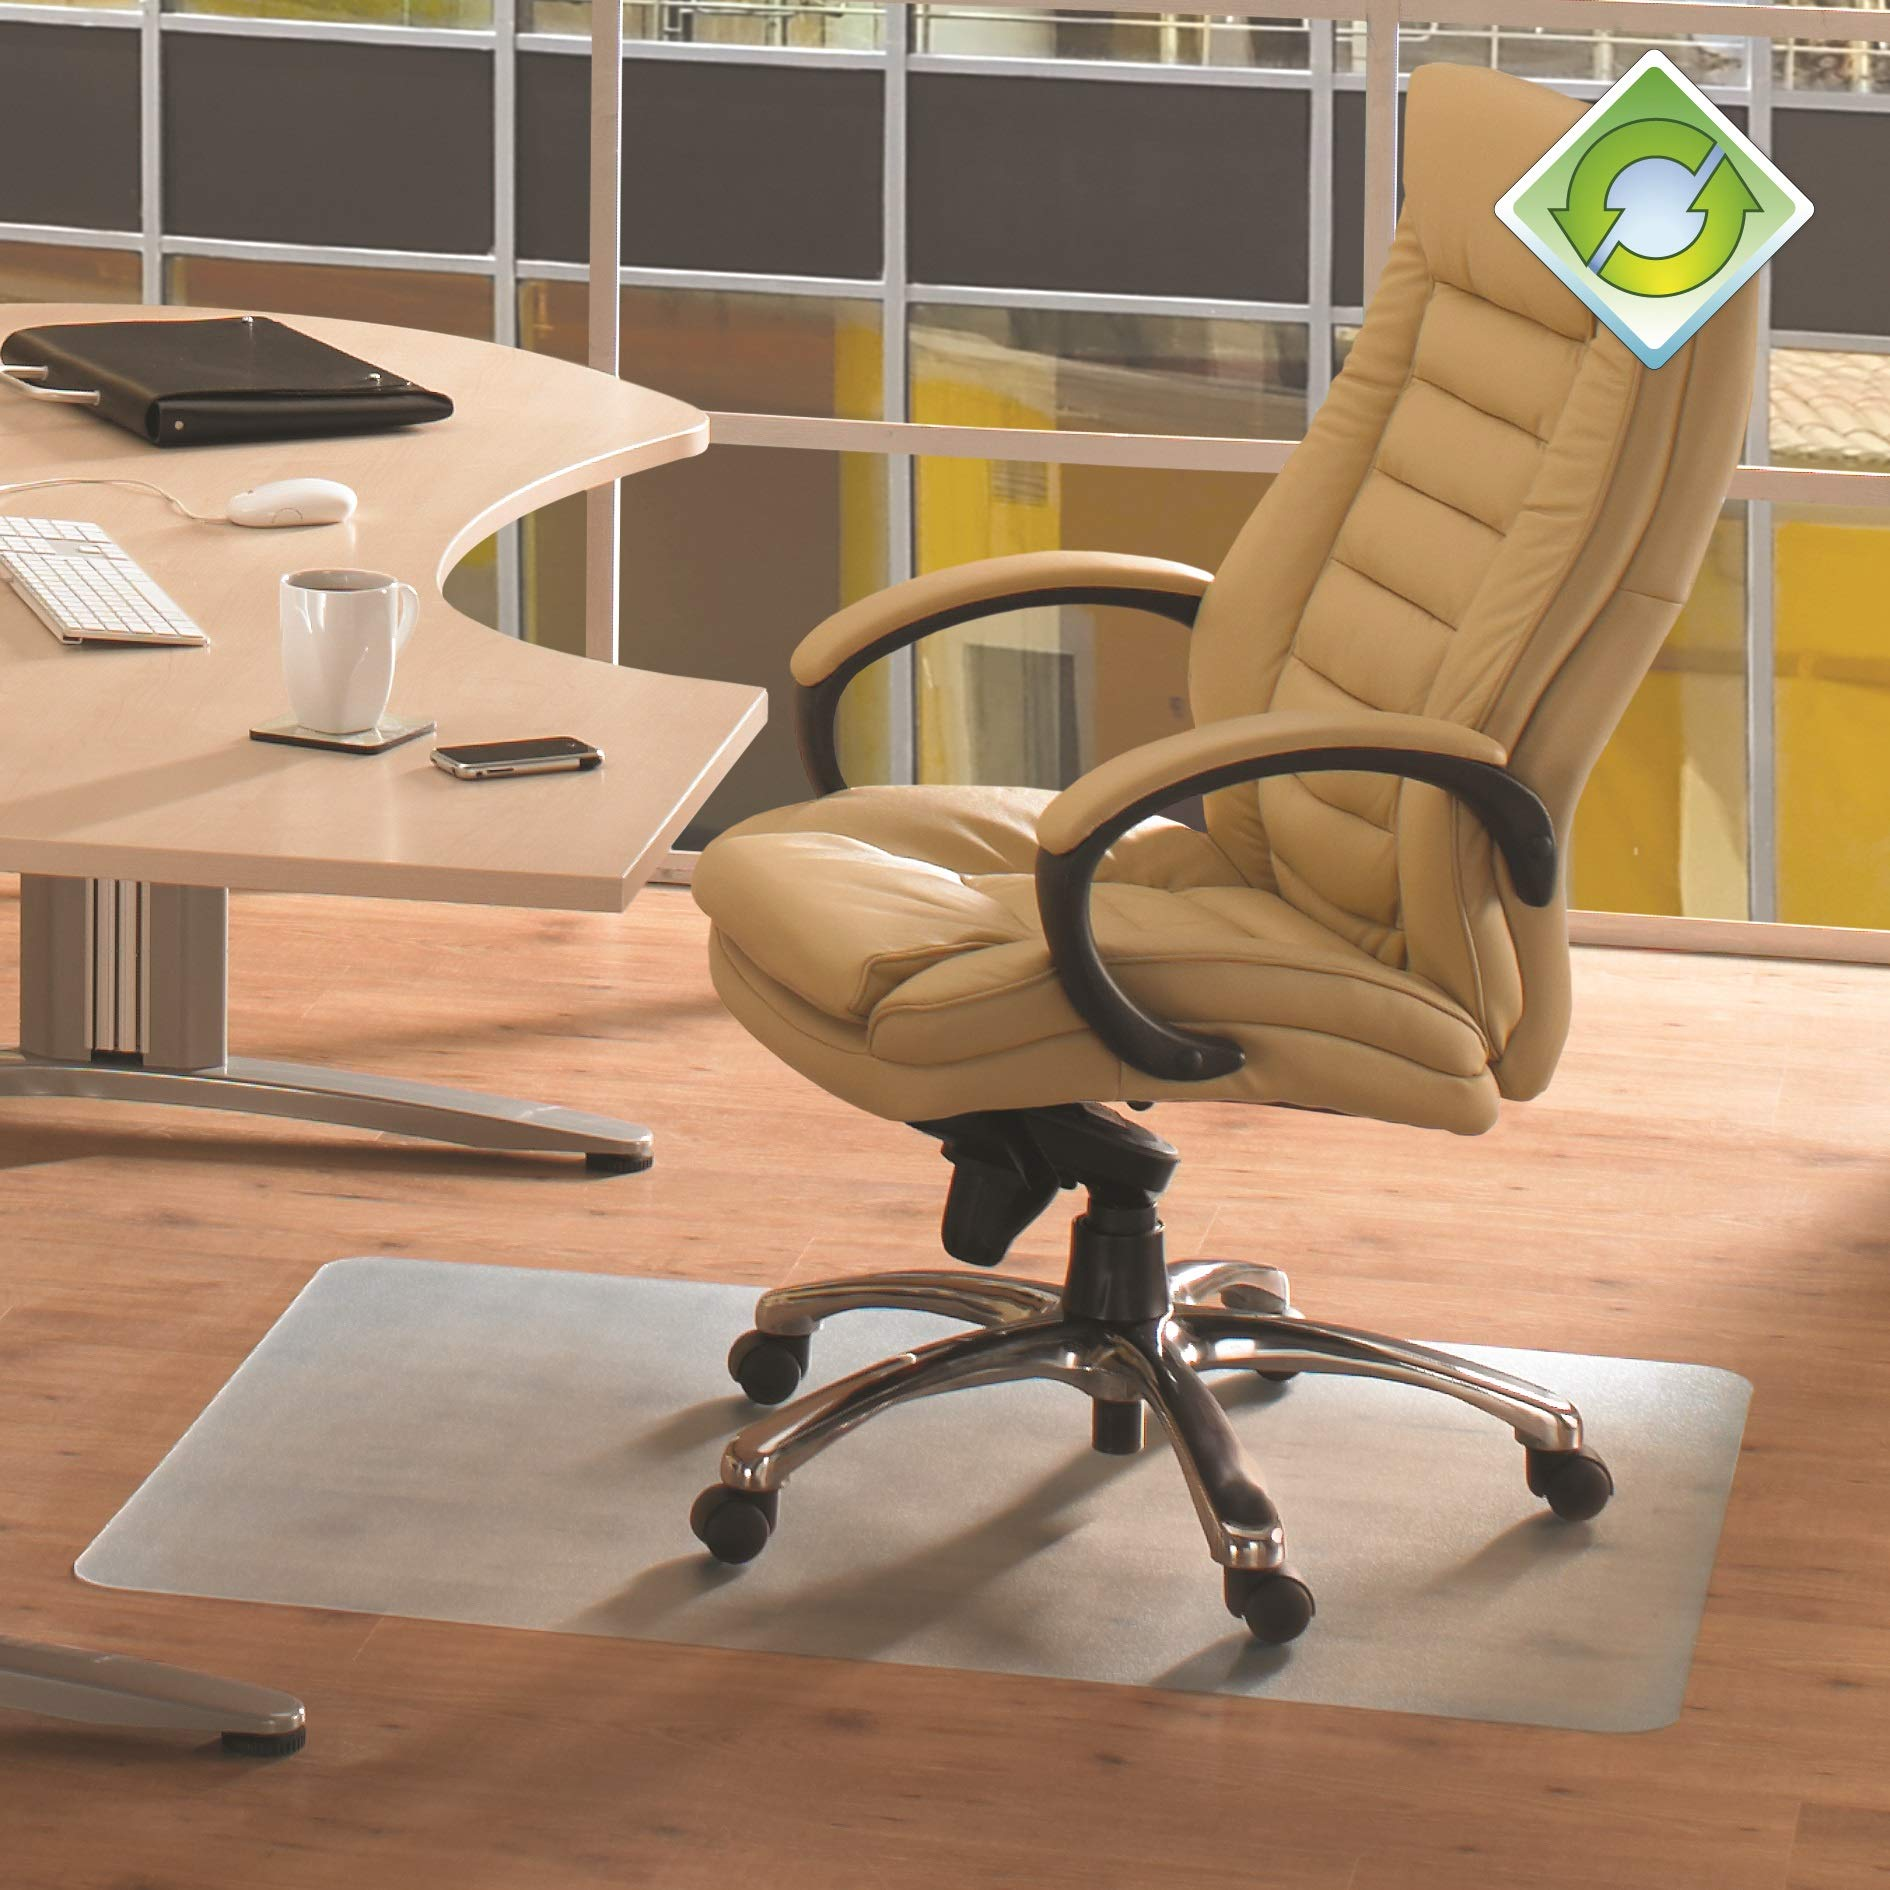 Floortex EcoTex Evolutionmat Chair Mat, Made of Recycled Enhanced Polymer, for Hard Floors, 48'' x 51'', Rectangular, Clear (FRECO124851EP)